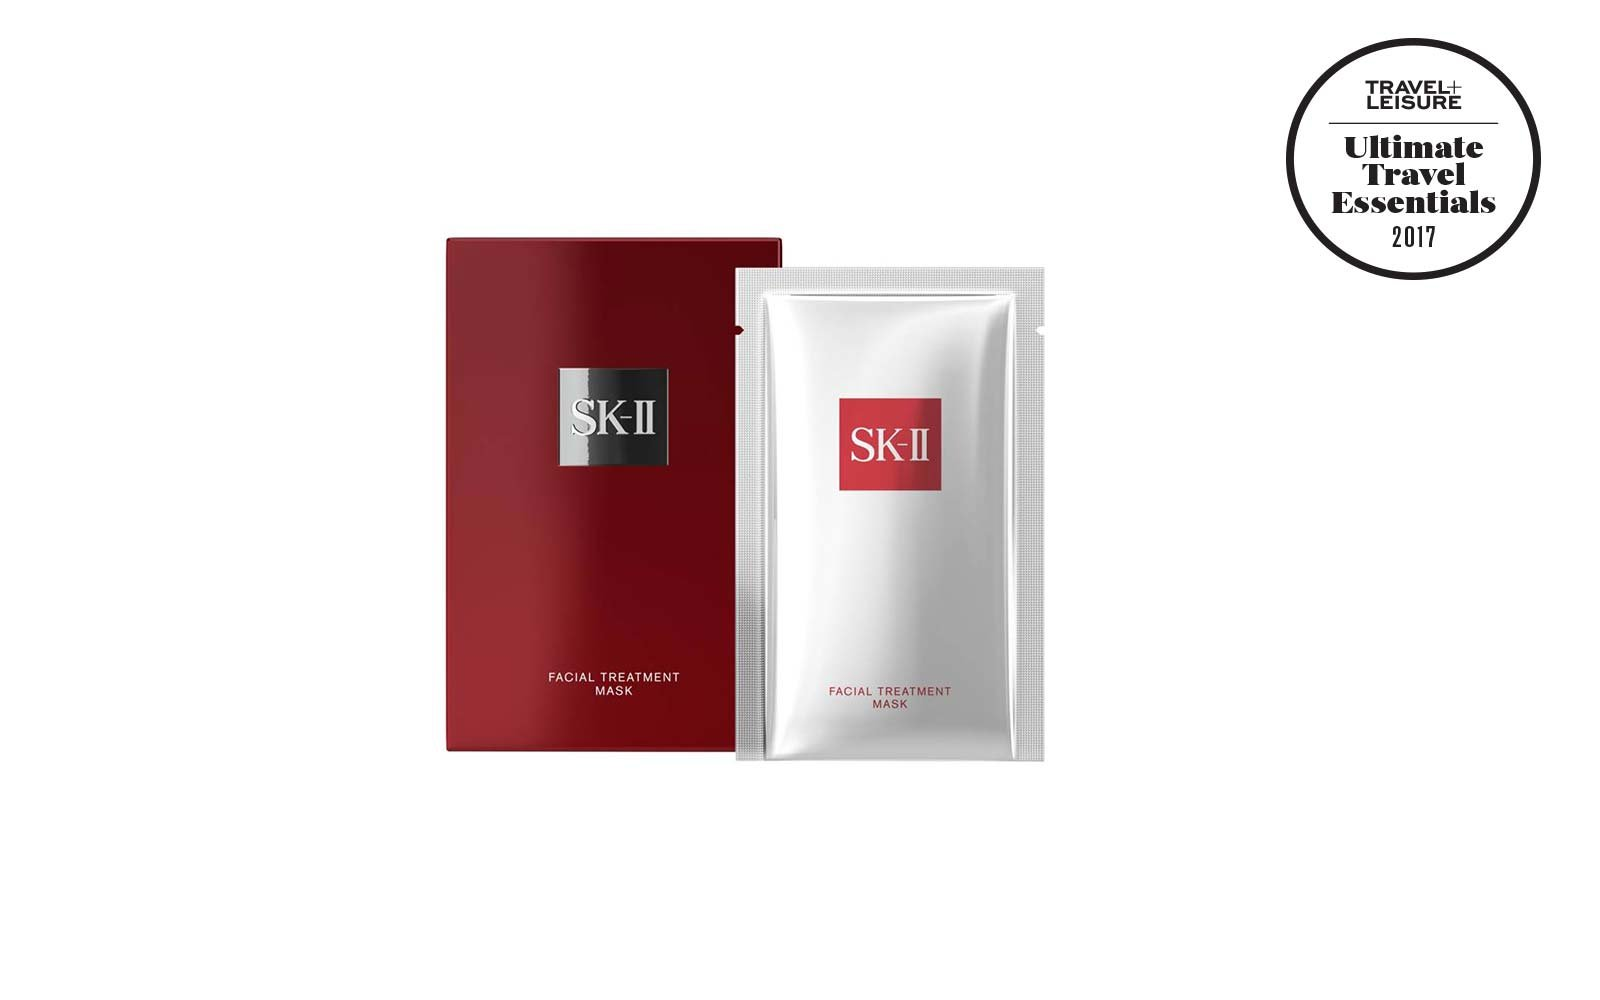 SK II facial treatment mask